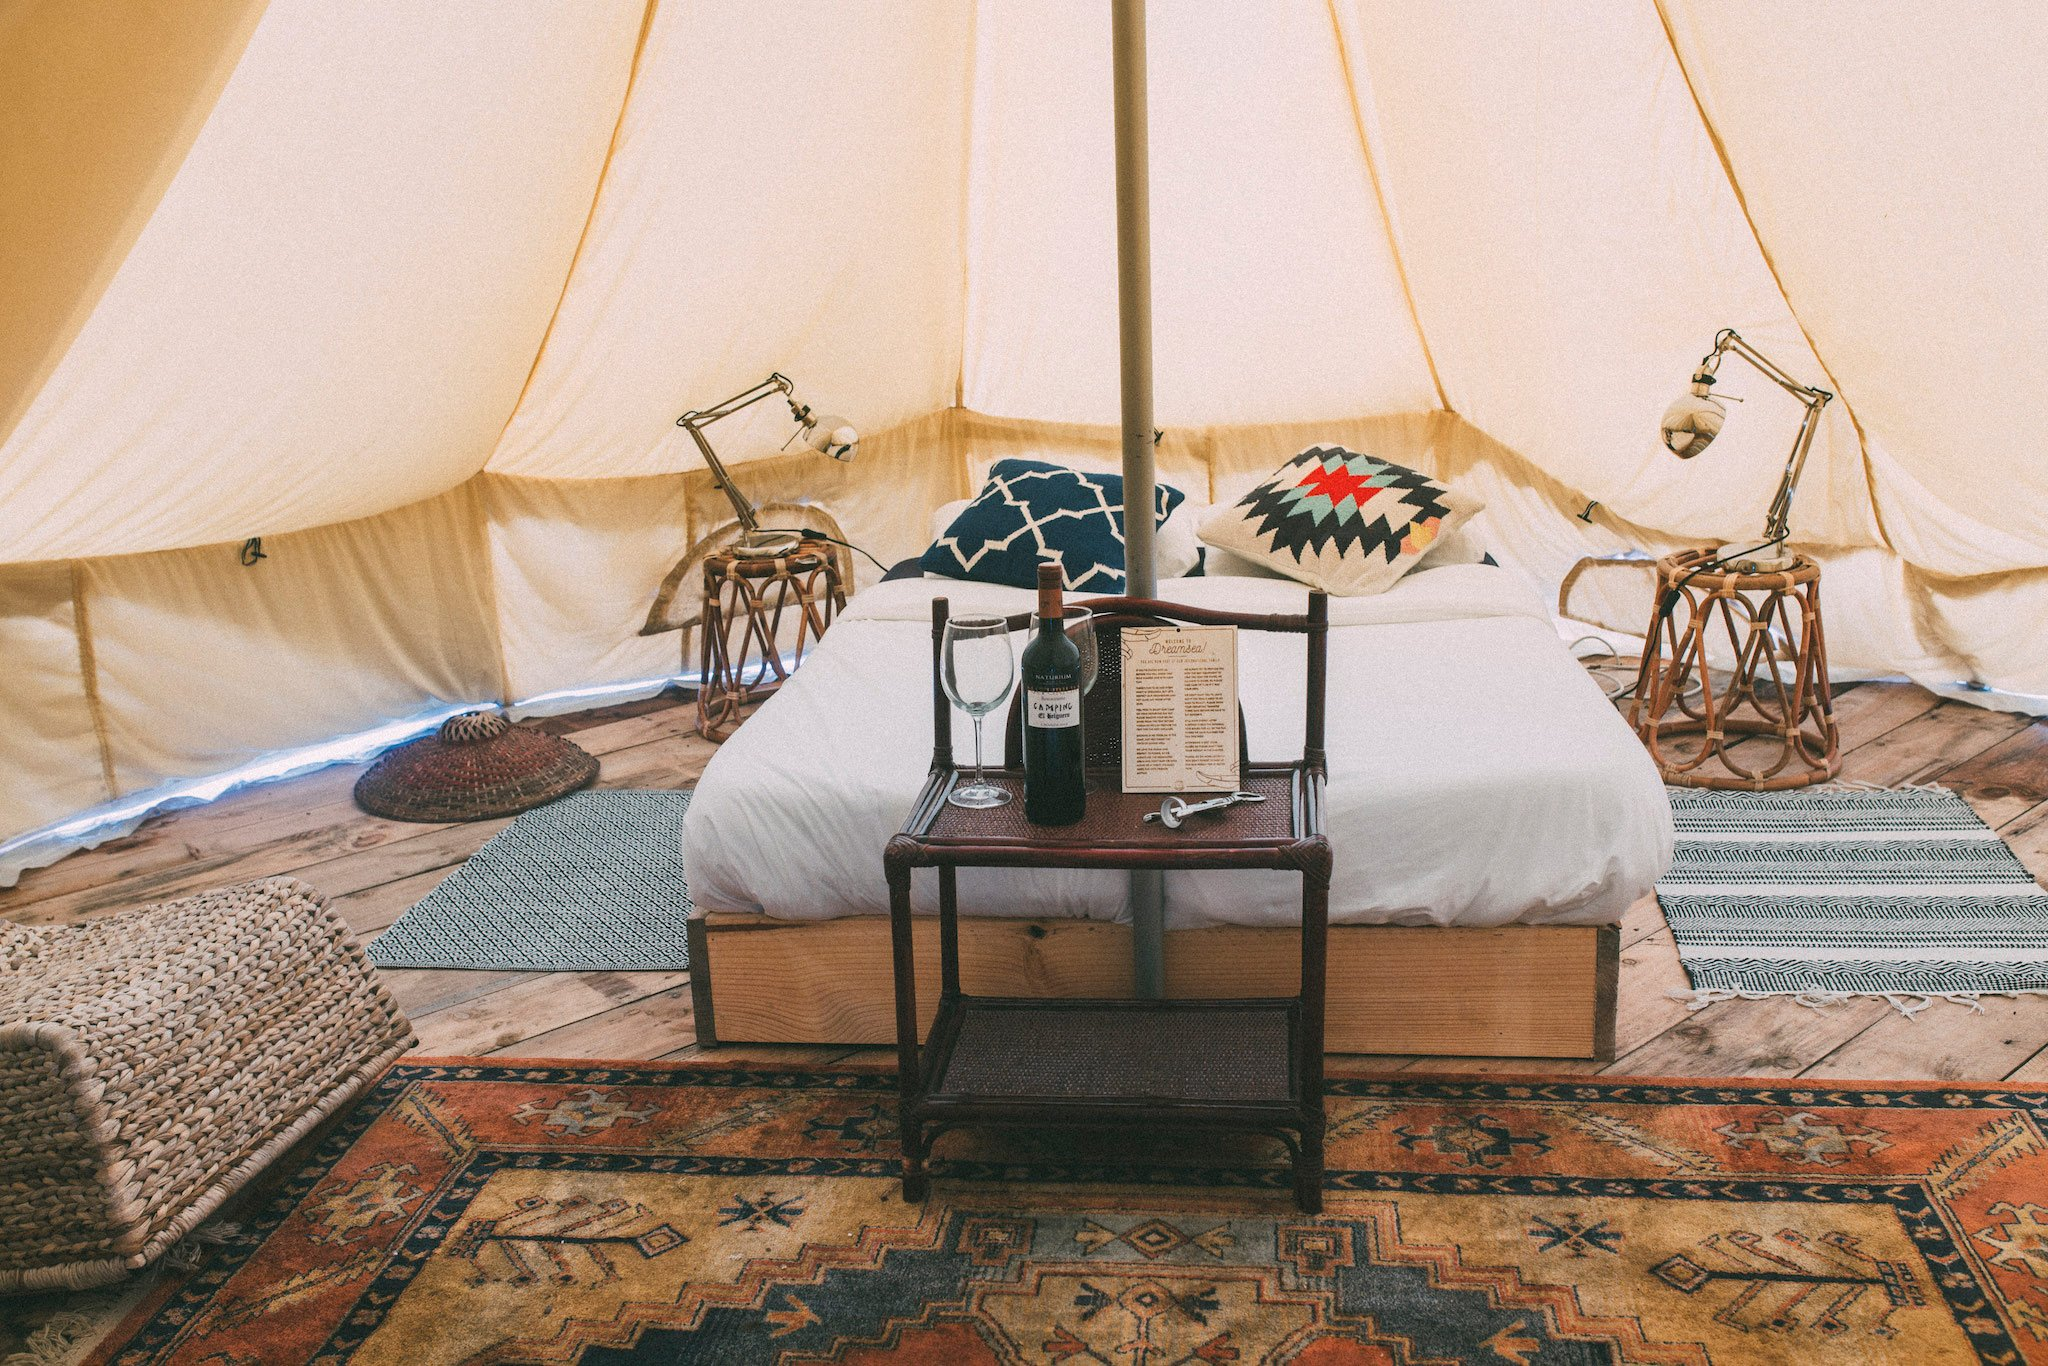 Glamping luxurious camping